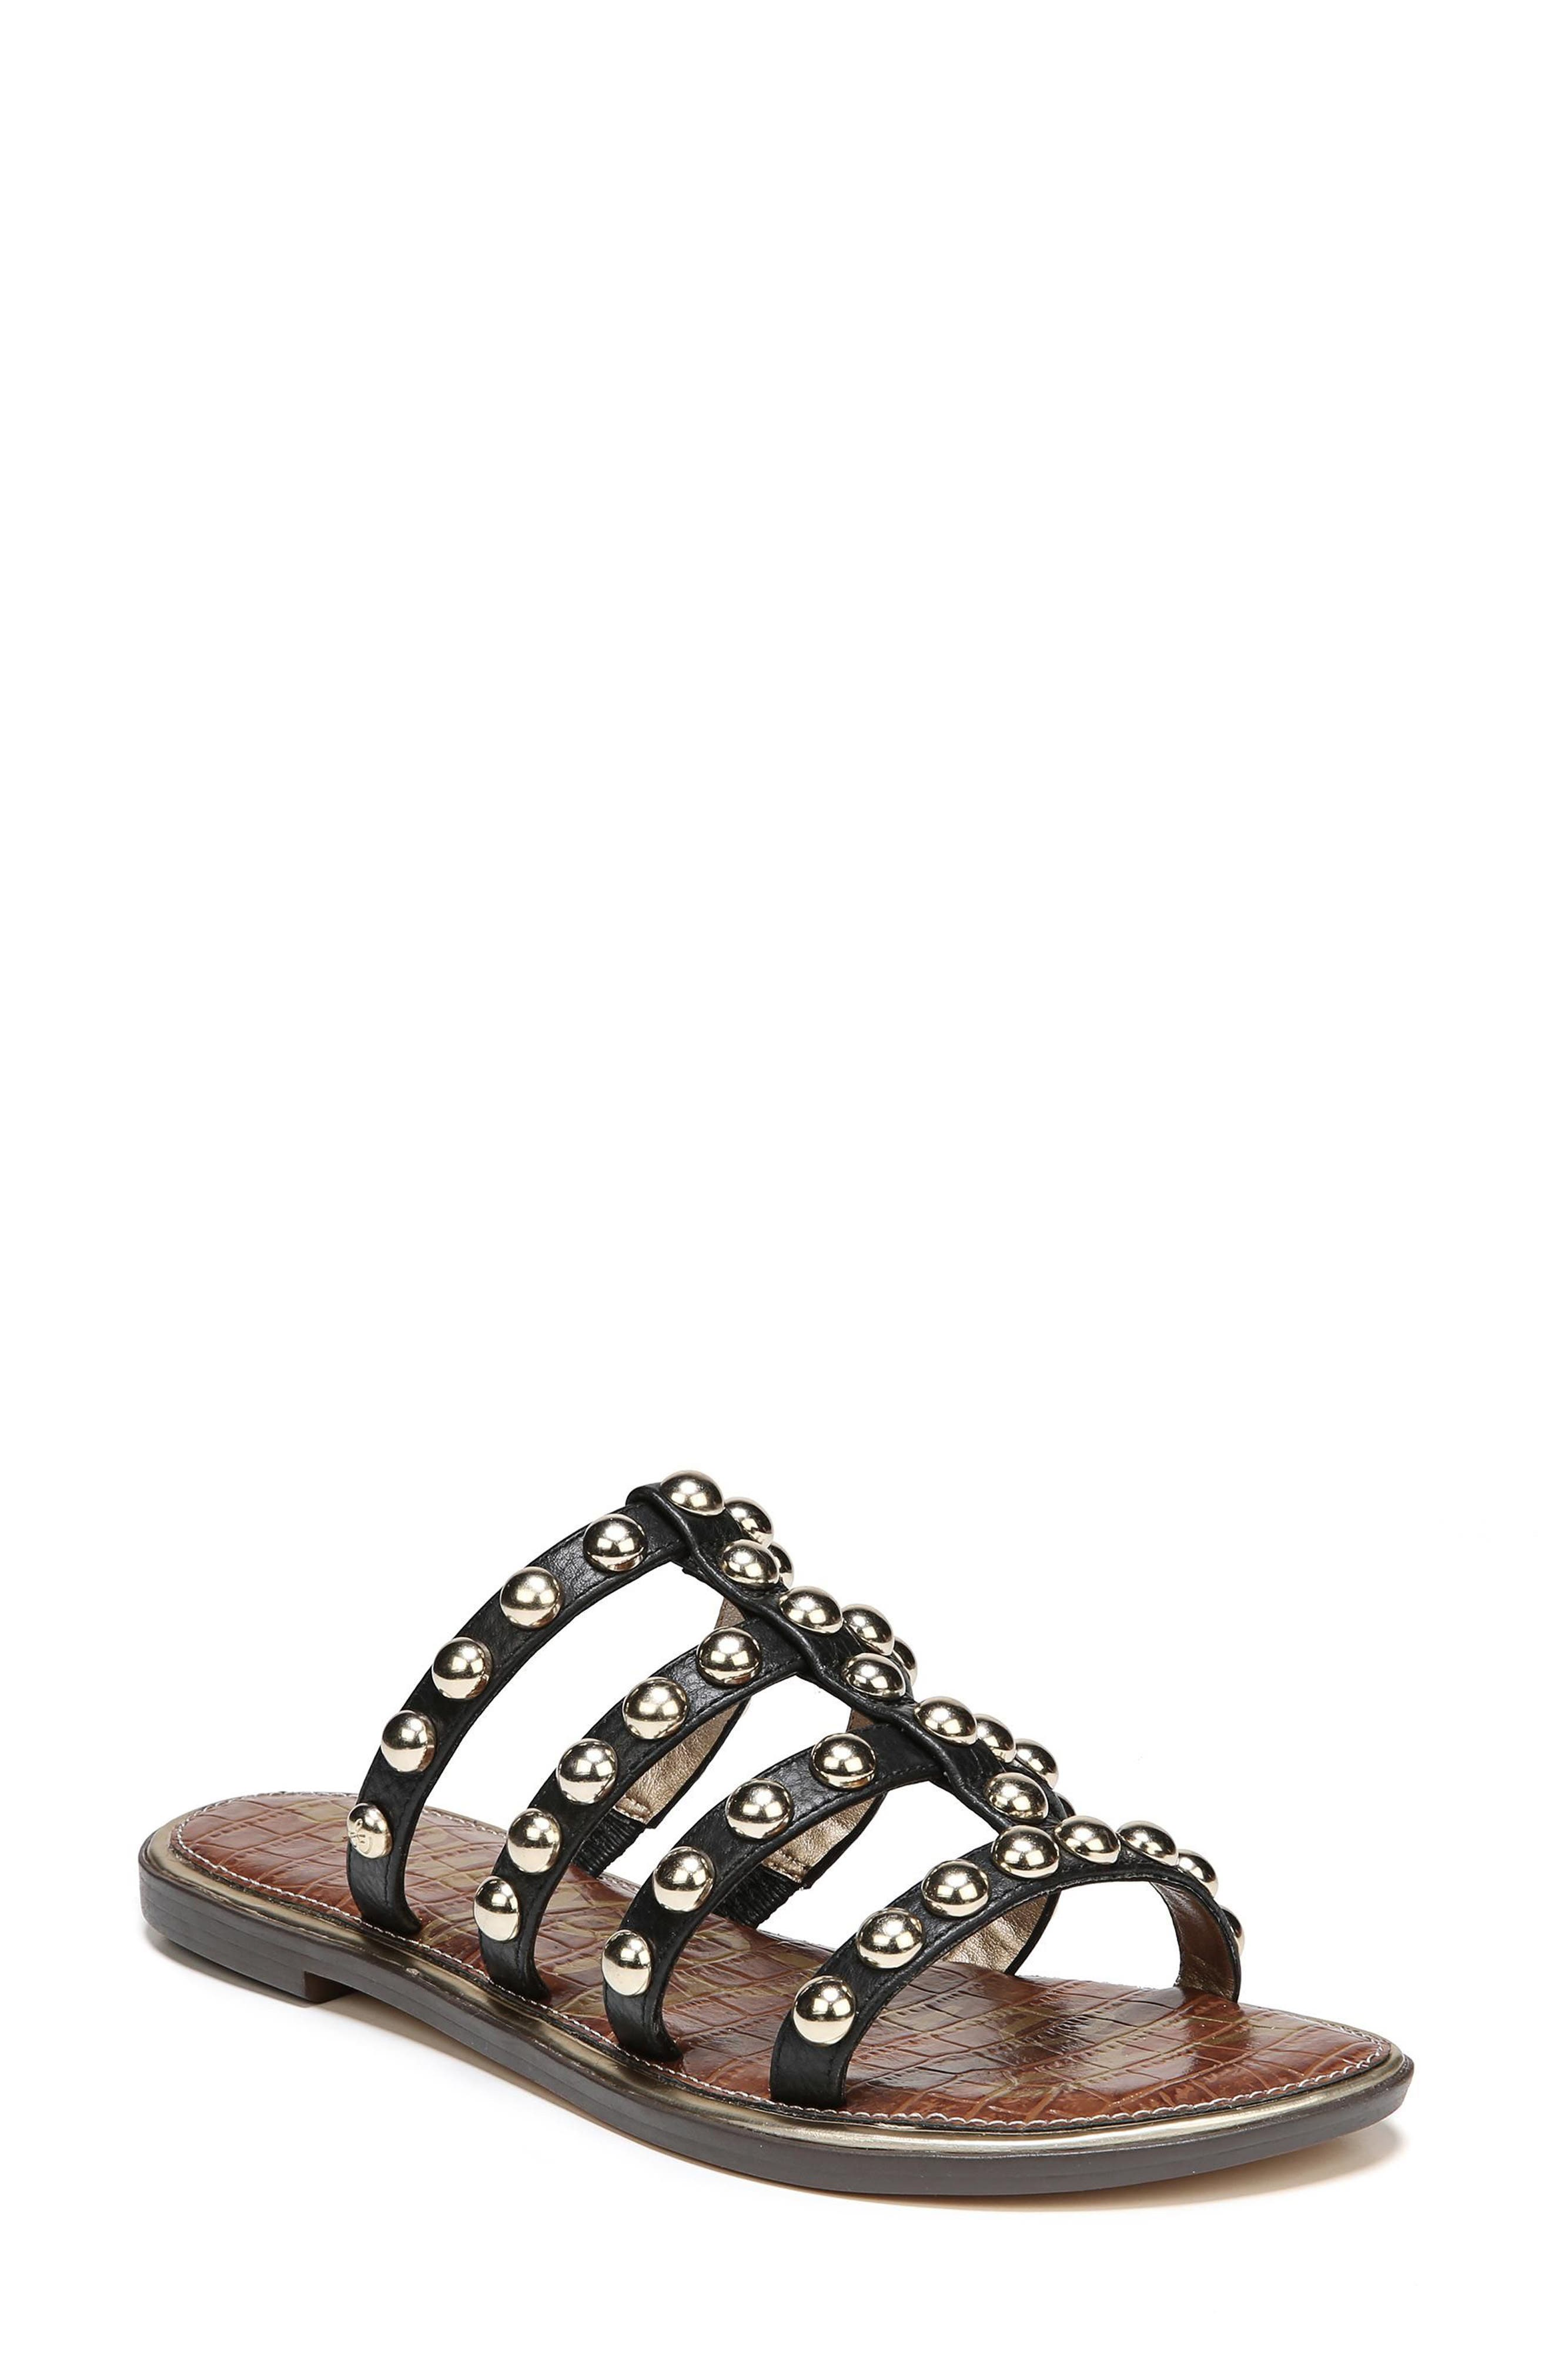 Glenn Studded Slide Sandal,                         Main,                         color, 001